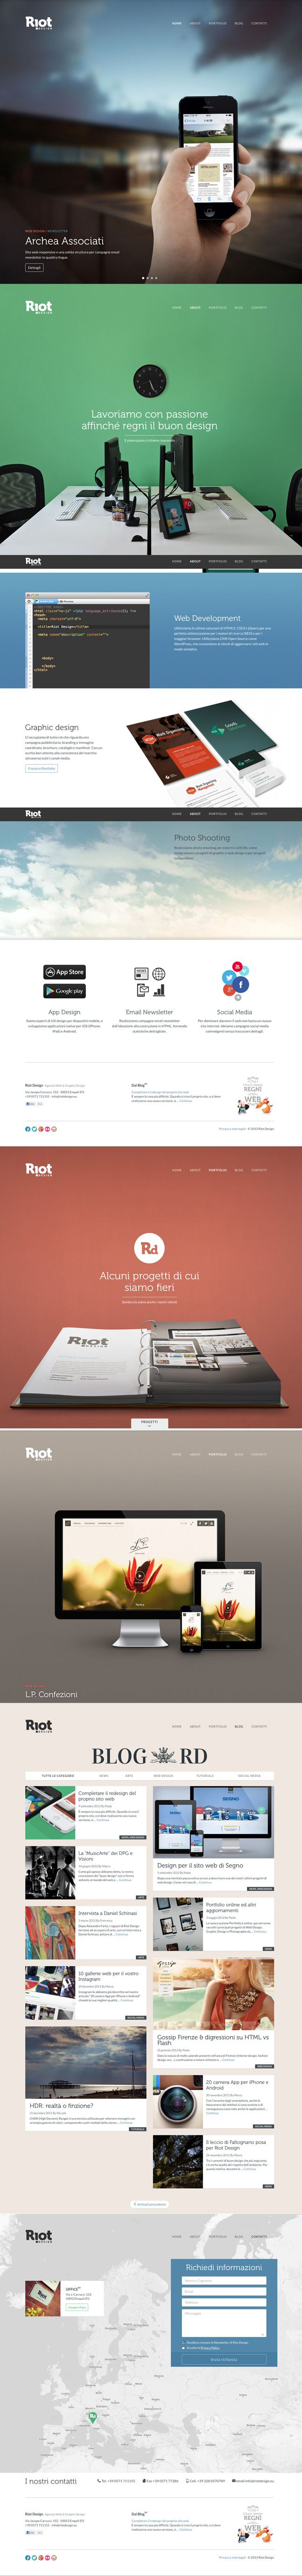 Winner 23 September Riot Design by Riot design http://www.cssdesignawards.com/css-web-design-award-winner.php?id=22895 Responsive portfolio website for our graphic and web design agency in Italy. #Responsive #Scroll #Colorful